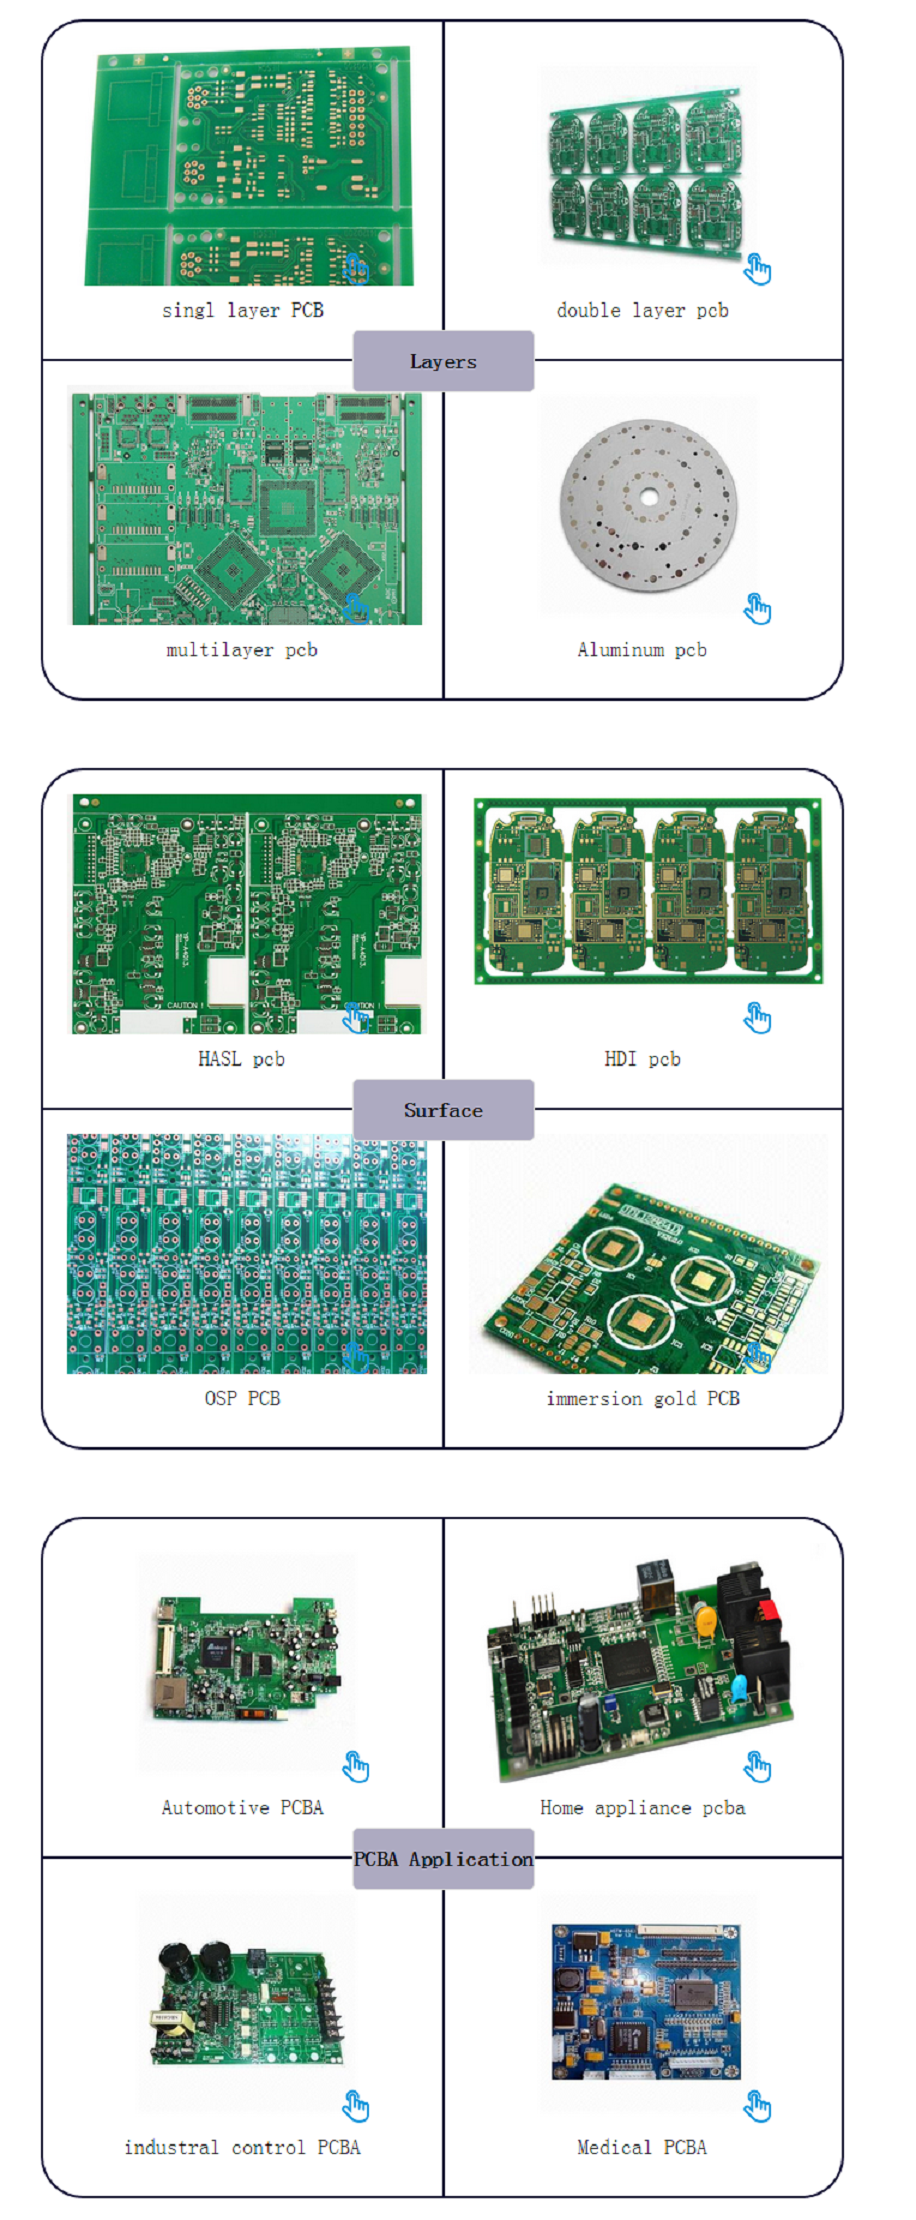 High Frequency Circuit Board Manufacturinghdi Pc Manufacturer Mount 4 Layers Fr4 Timer Pcb Printed Boards Design Of Hdi Htb1x0mjnvxxxxbvapxx760xfxxxh